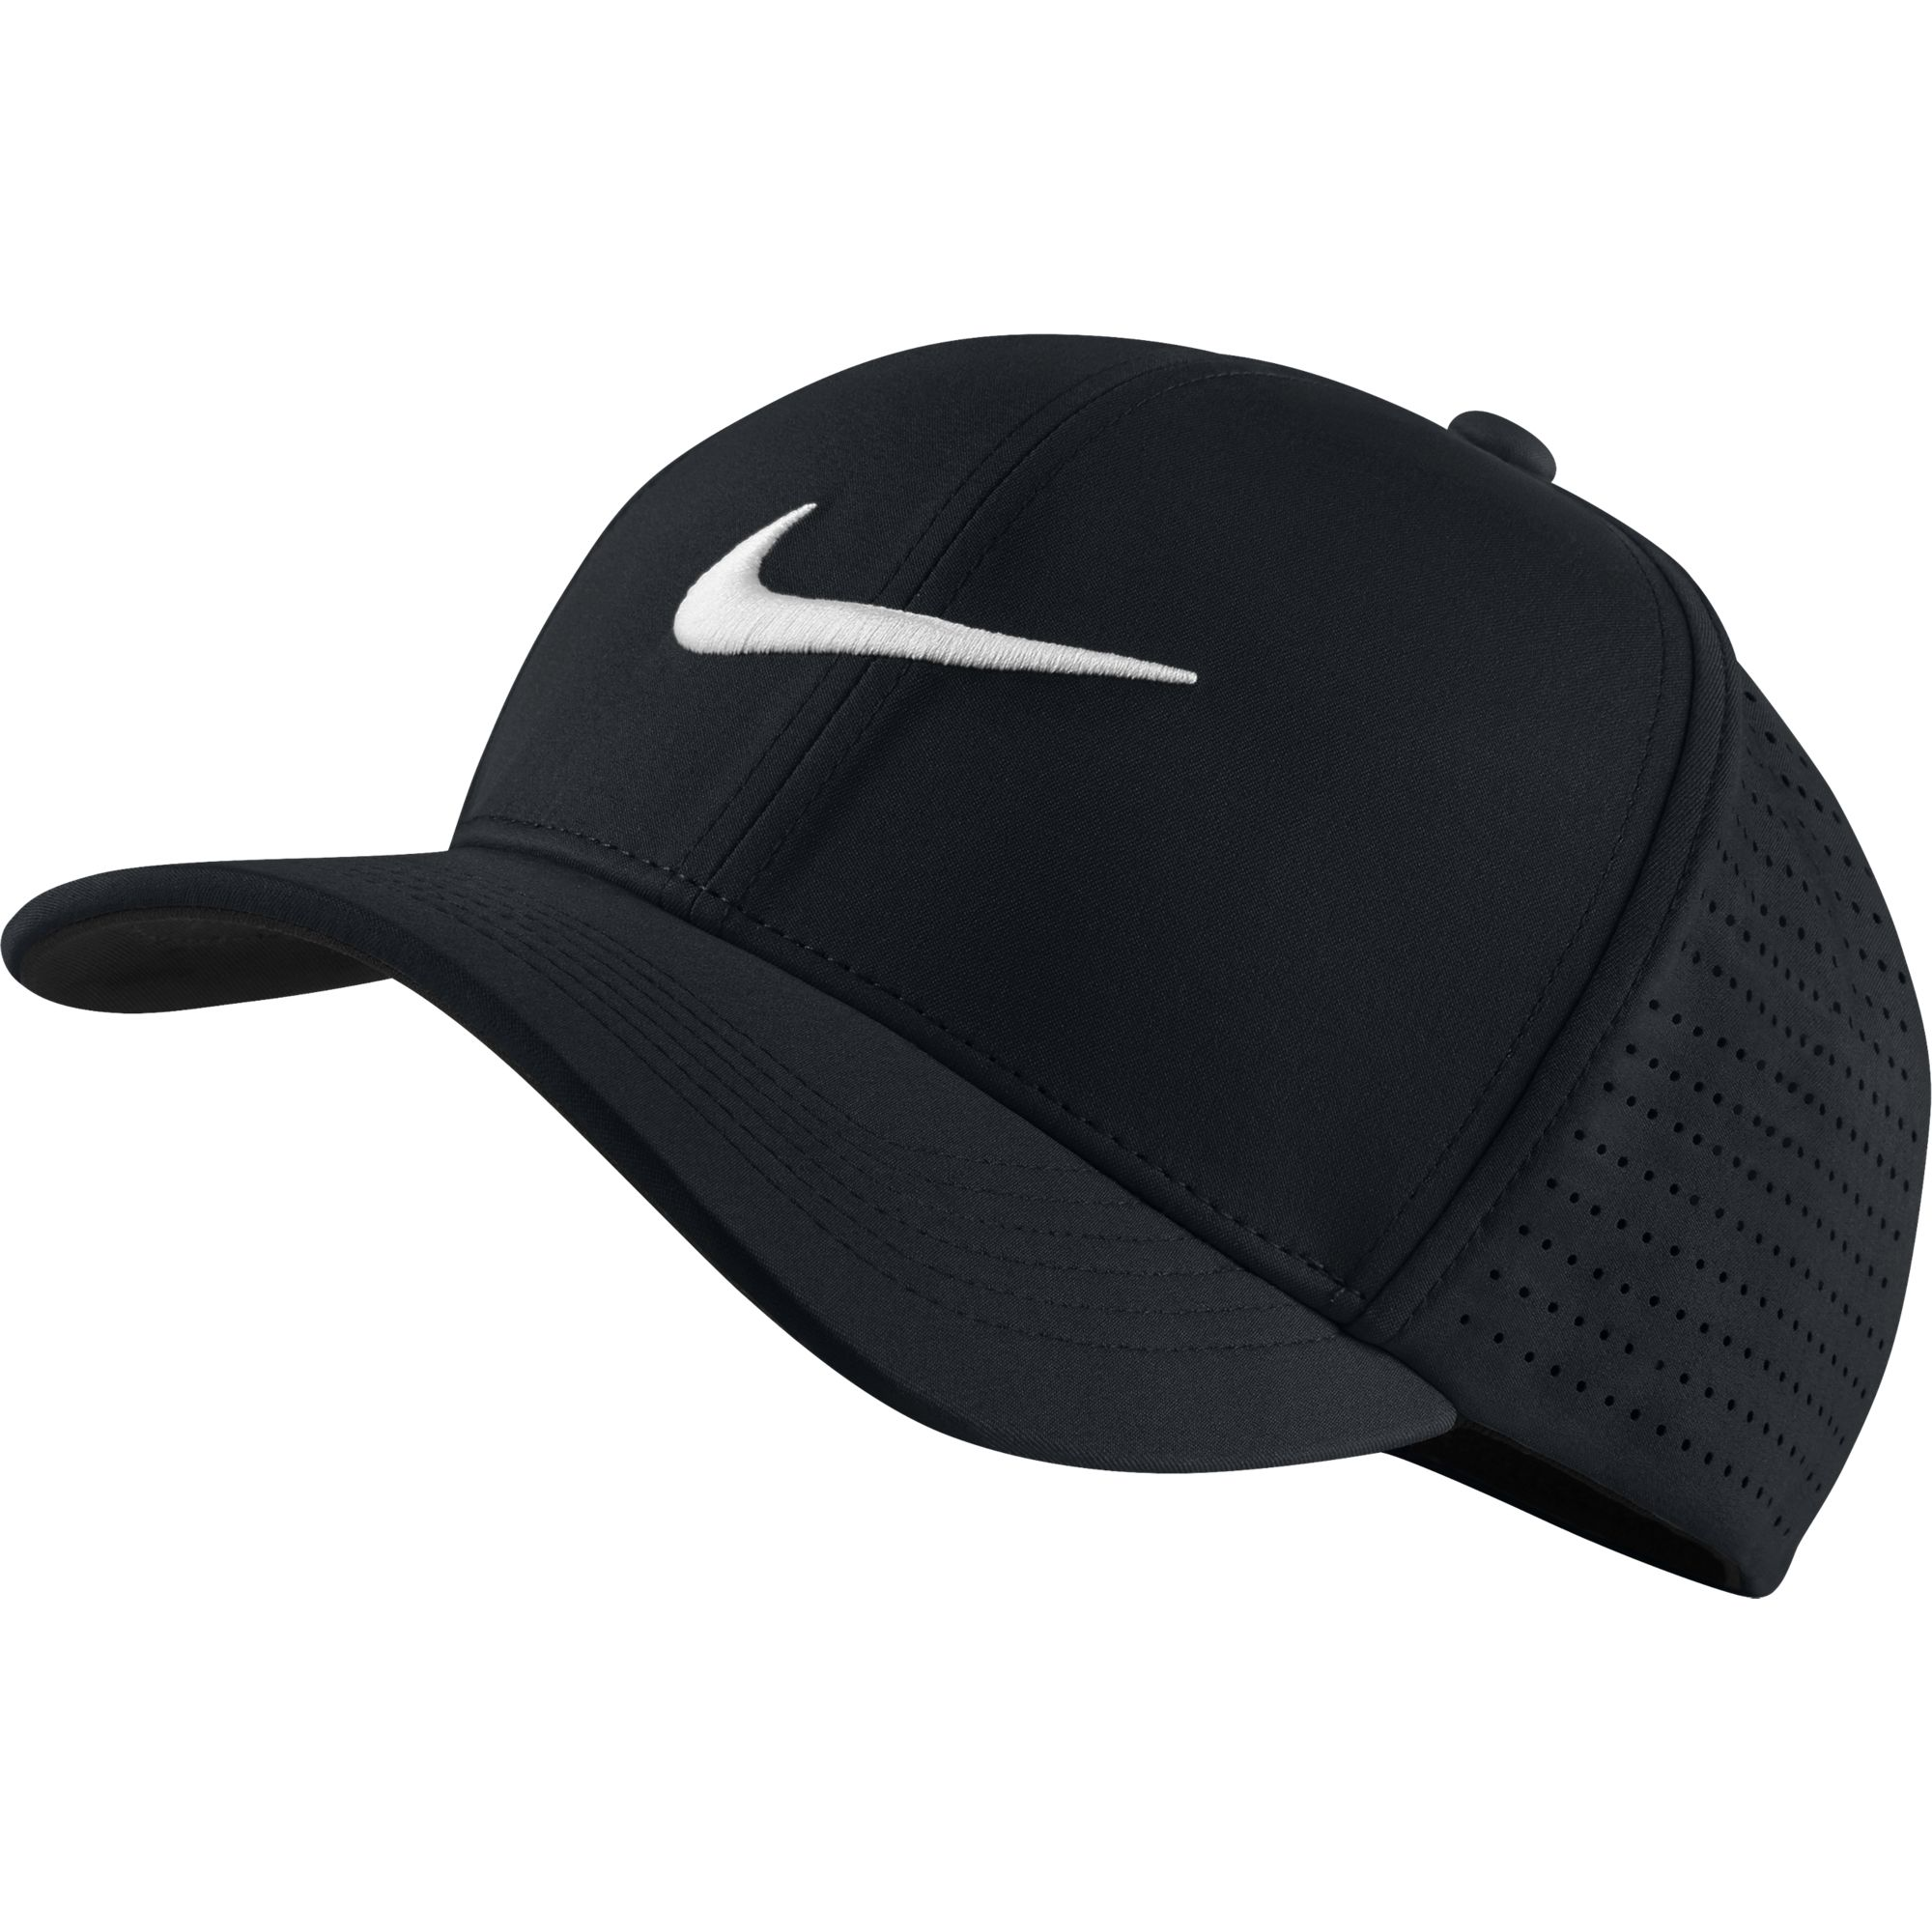 The Nike Classic 99 Fitted Golf Hat Offers A Comfortable Fit And Exceptional Airflow On Course With Stretch Fabric Laser Cut Perforations